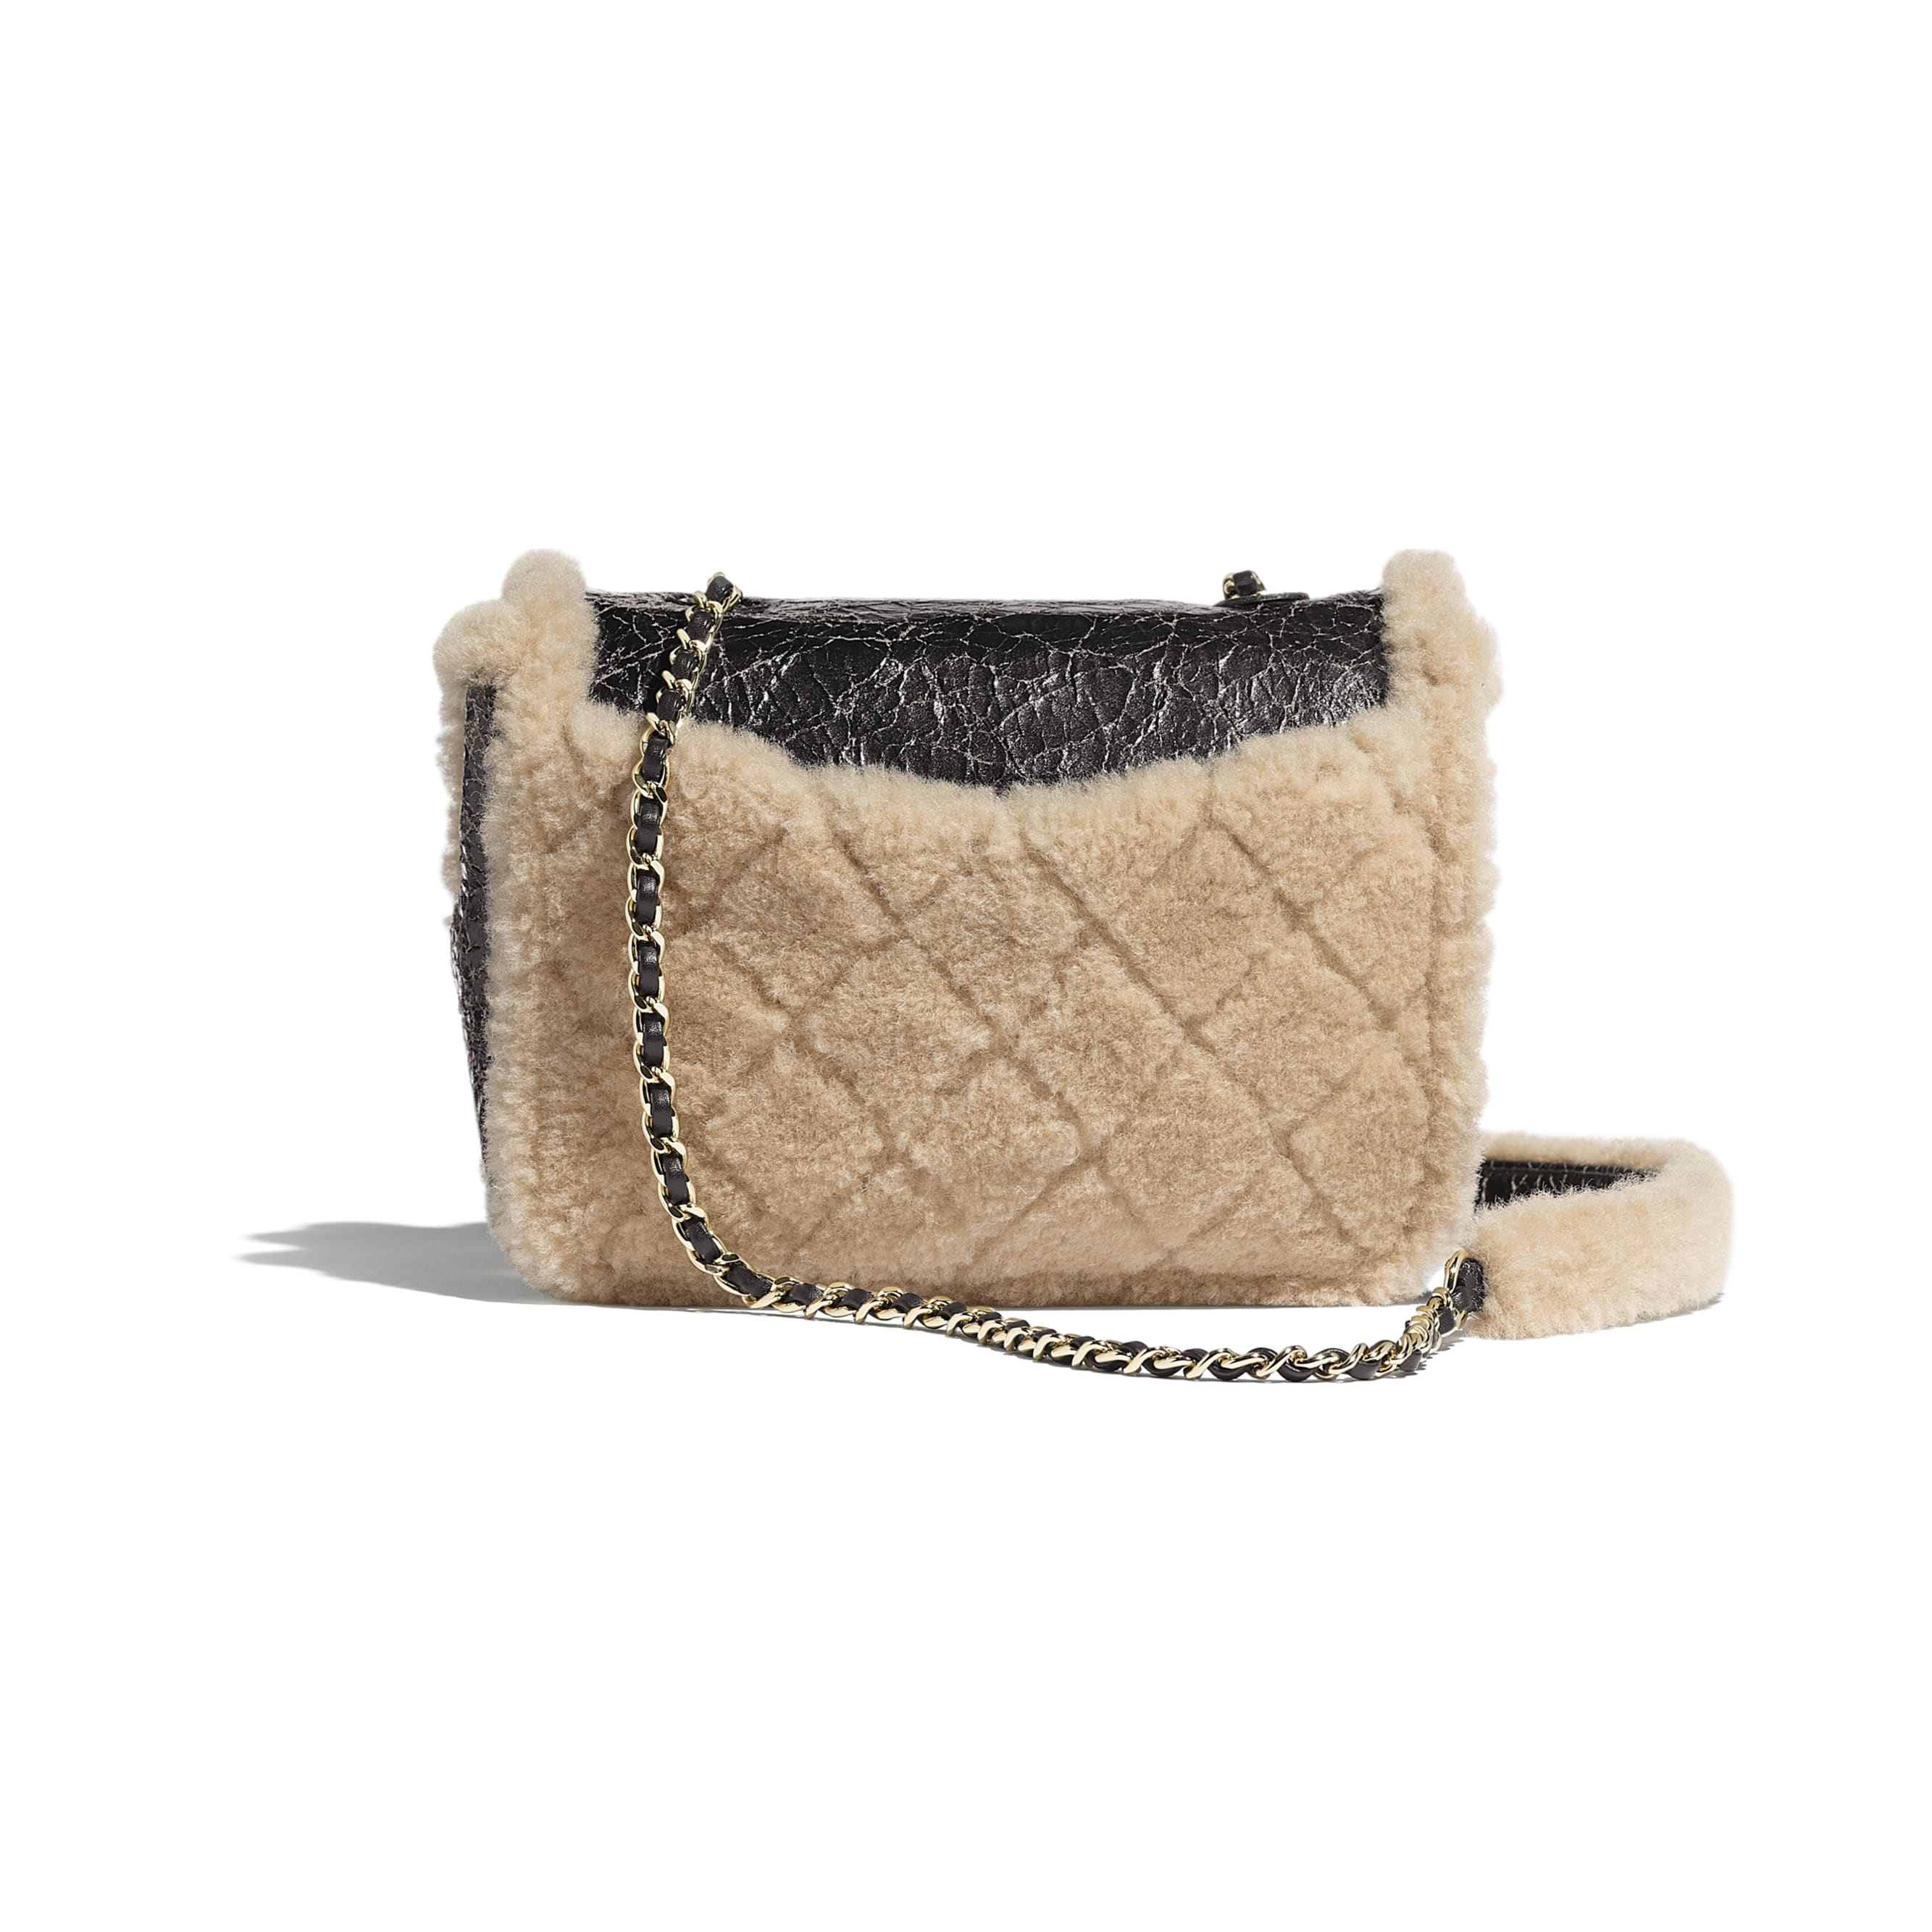 Flap Bag - Black & Beige - Shiny Crumpled Sheepskin, Shearling Sheepskin & Gold-Tone Metal - Alternative view - see standard sized version